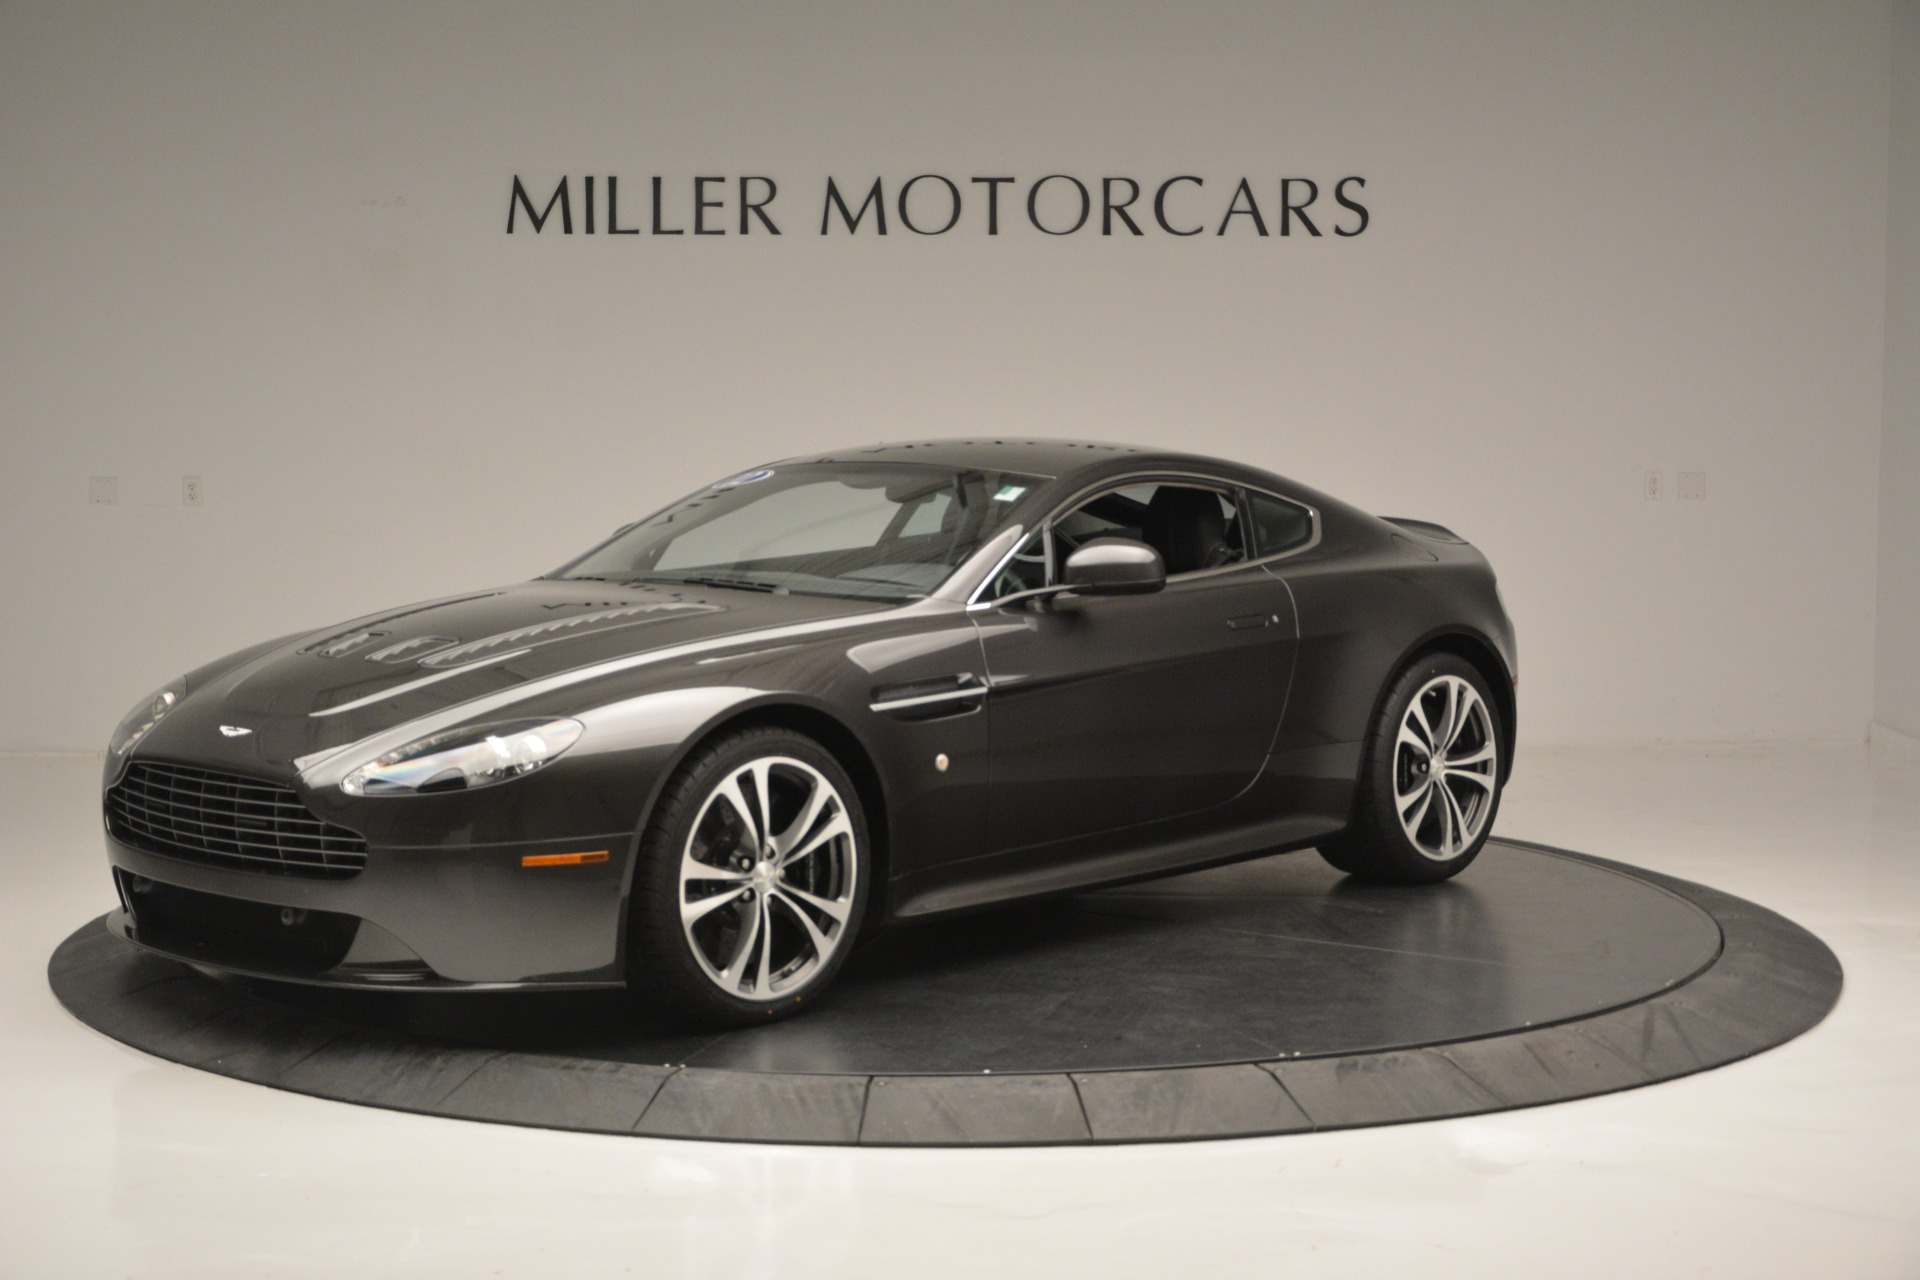 Used 2012 Aston Martin V12 Vantage Coupe for sale Sold at Pagani of Greenwich in Greenwich CT 06830 1